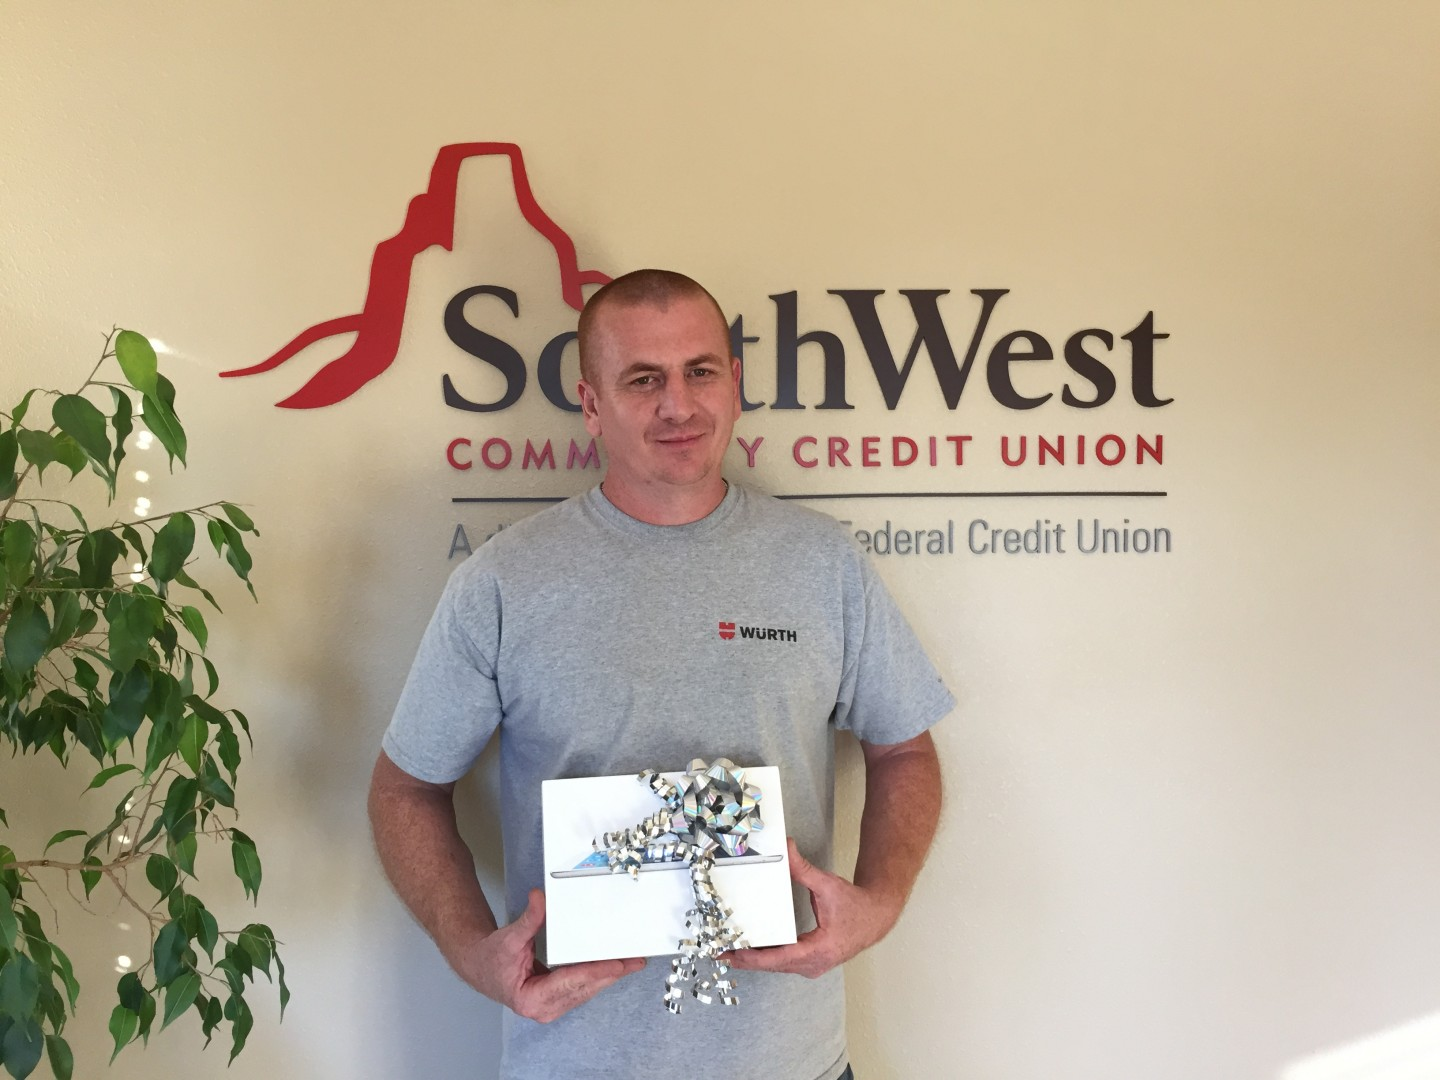 Ryan Carter holds the iPad he was awarded by SouthWest Community Federal Credit Union for his participation in the United Way Dixie Ball Drop for Charity on Oct. 24, St. George, Utah, Nov. 19, 2014 | Photo courtesy of Rebekah Pectol, St. George News